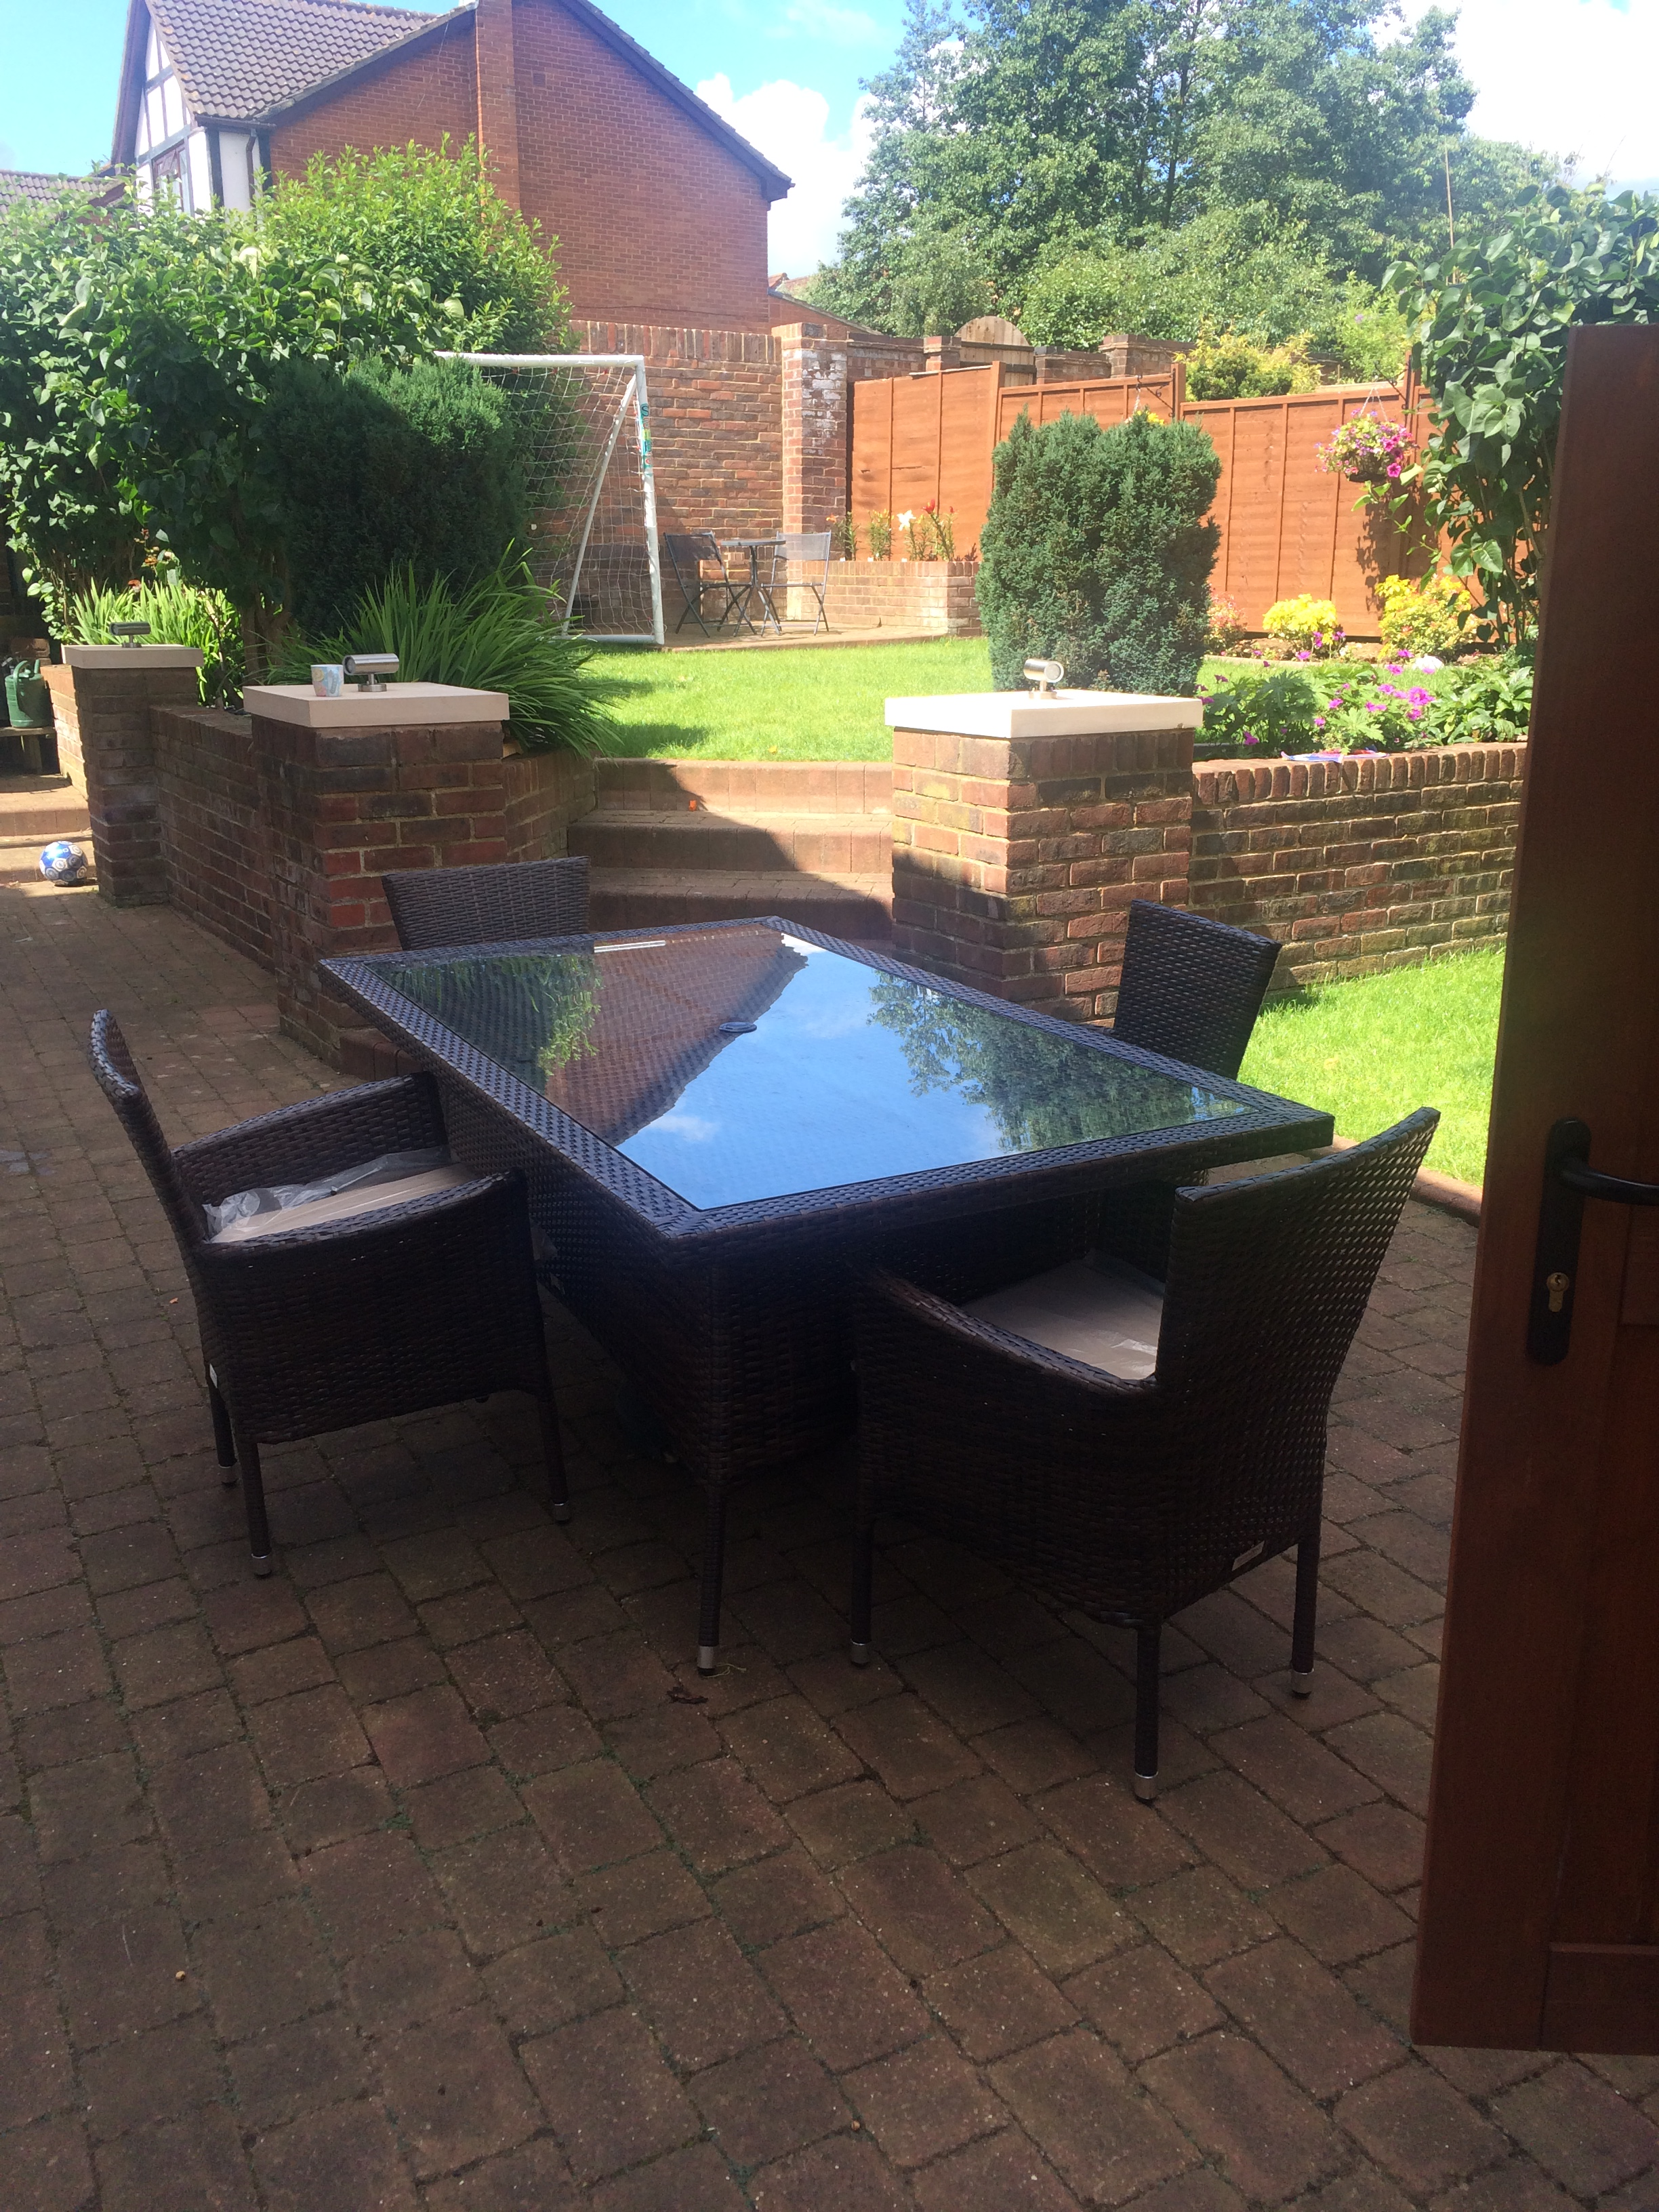 Be ready for sunshine with an outdoor dining set and free parasol